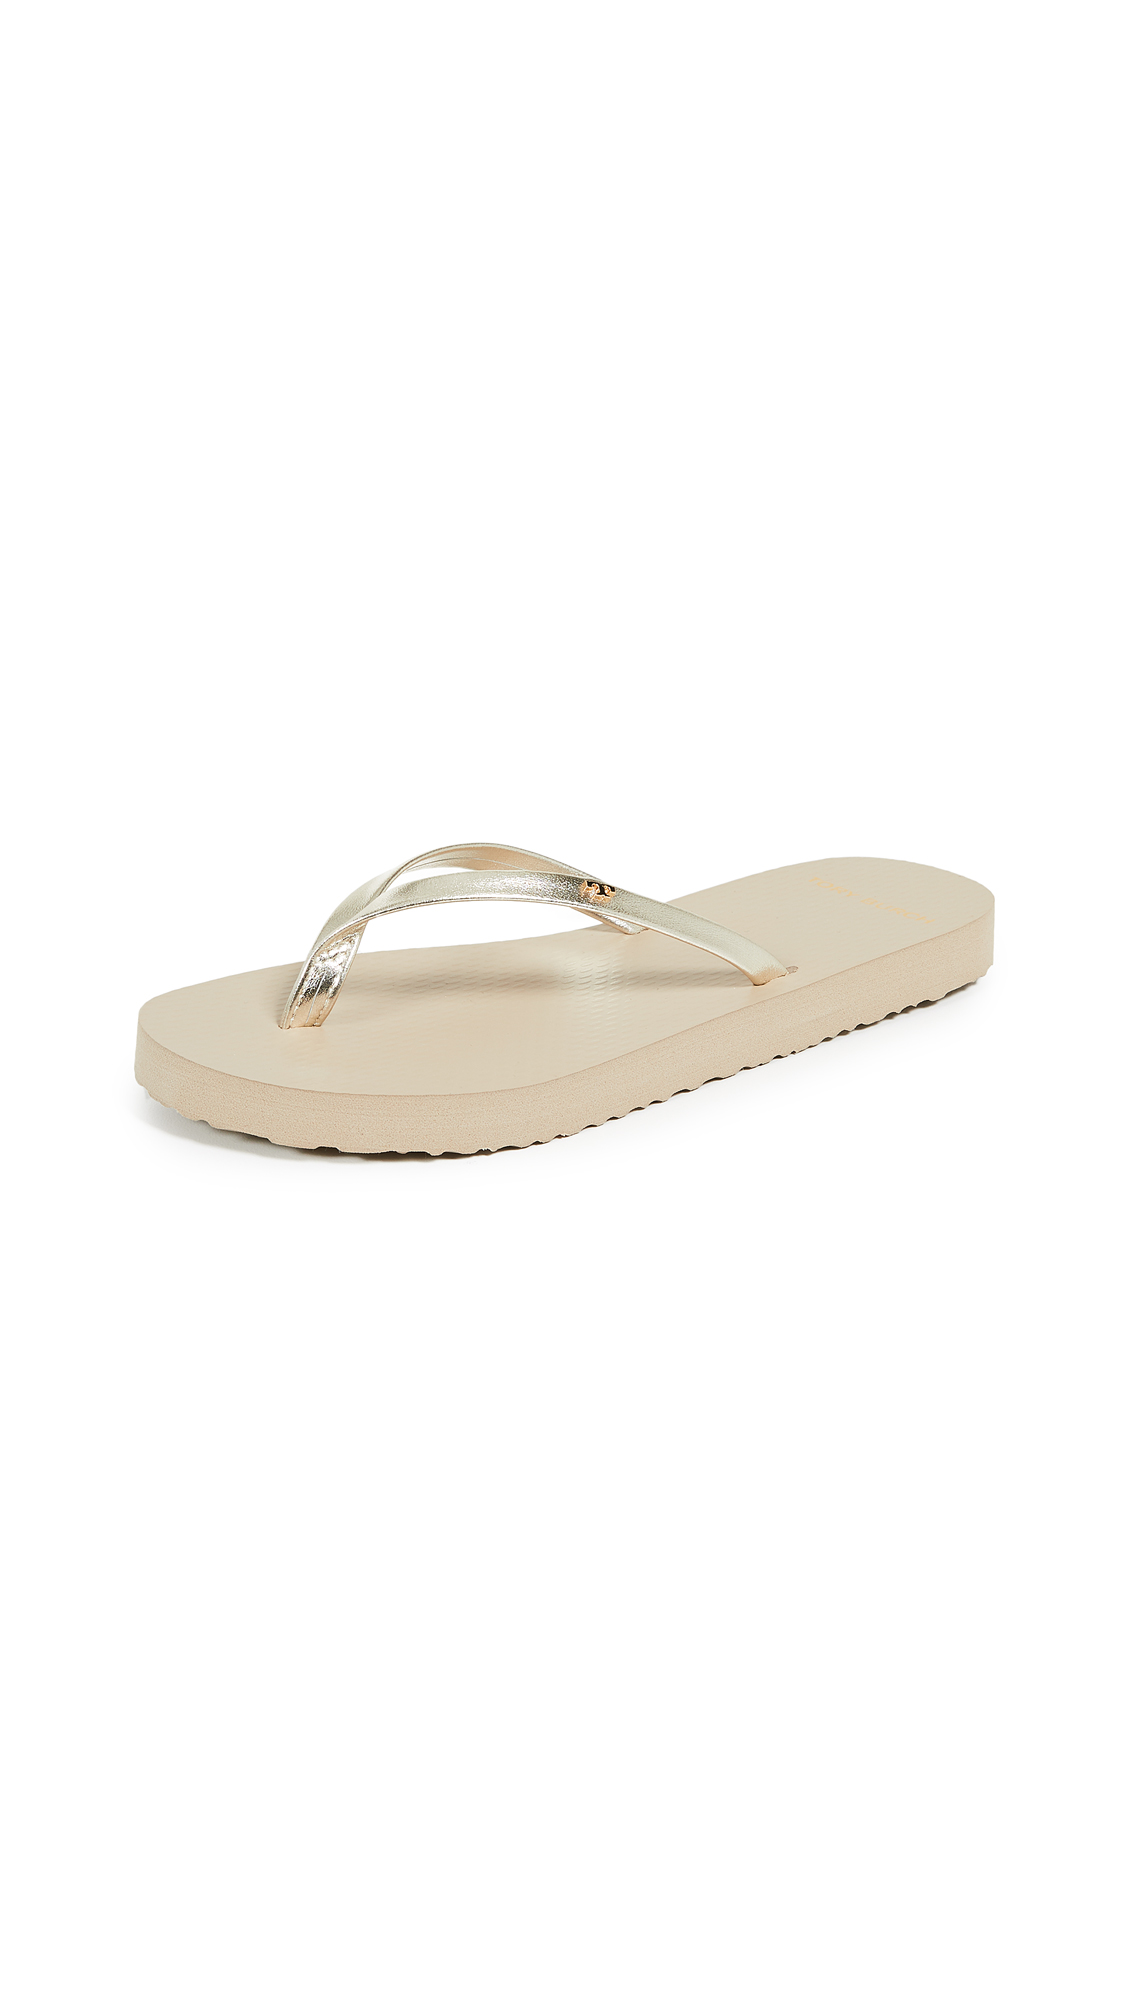 Tory Burch Metallic Leather Flip Flops - Spark Gold/Light Taupe